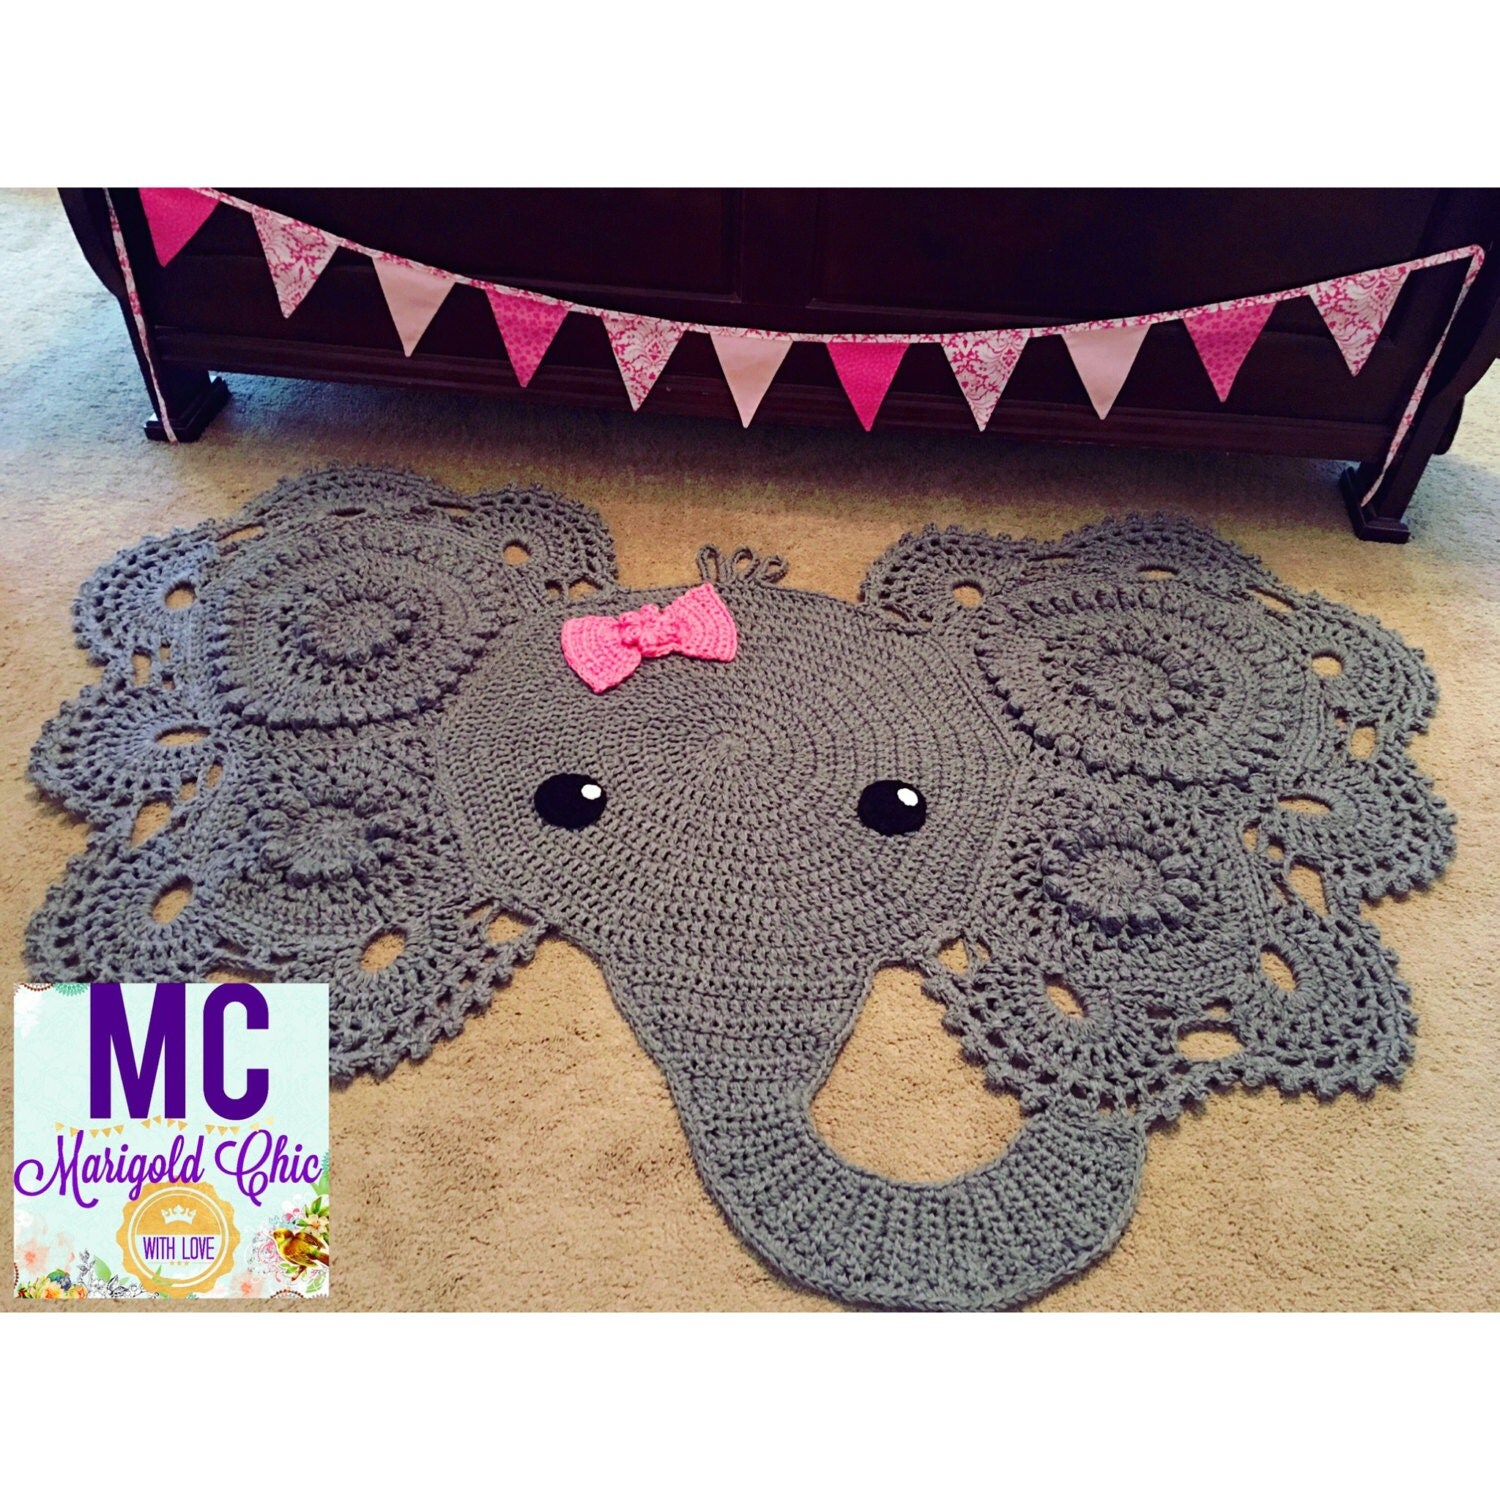 Elephant Rug THREE Strand Yarn Used Popular By MCMarigoldChic